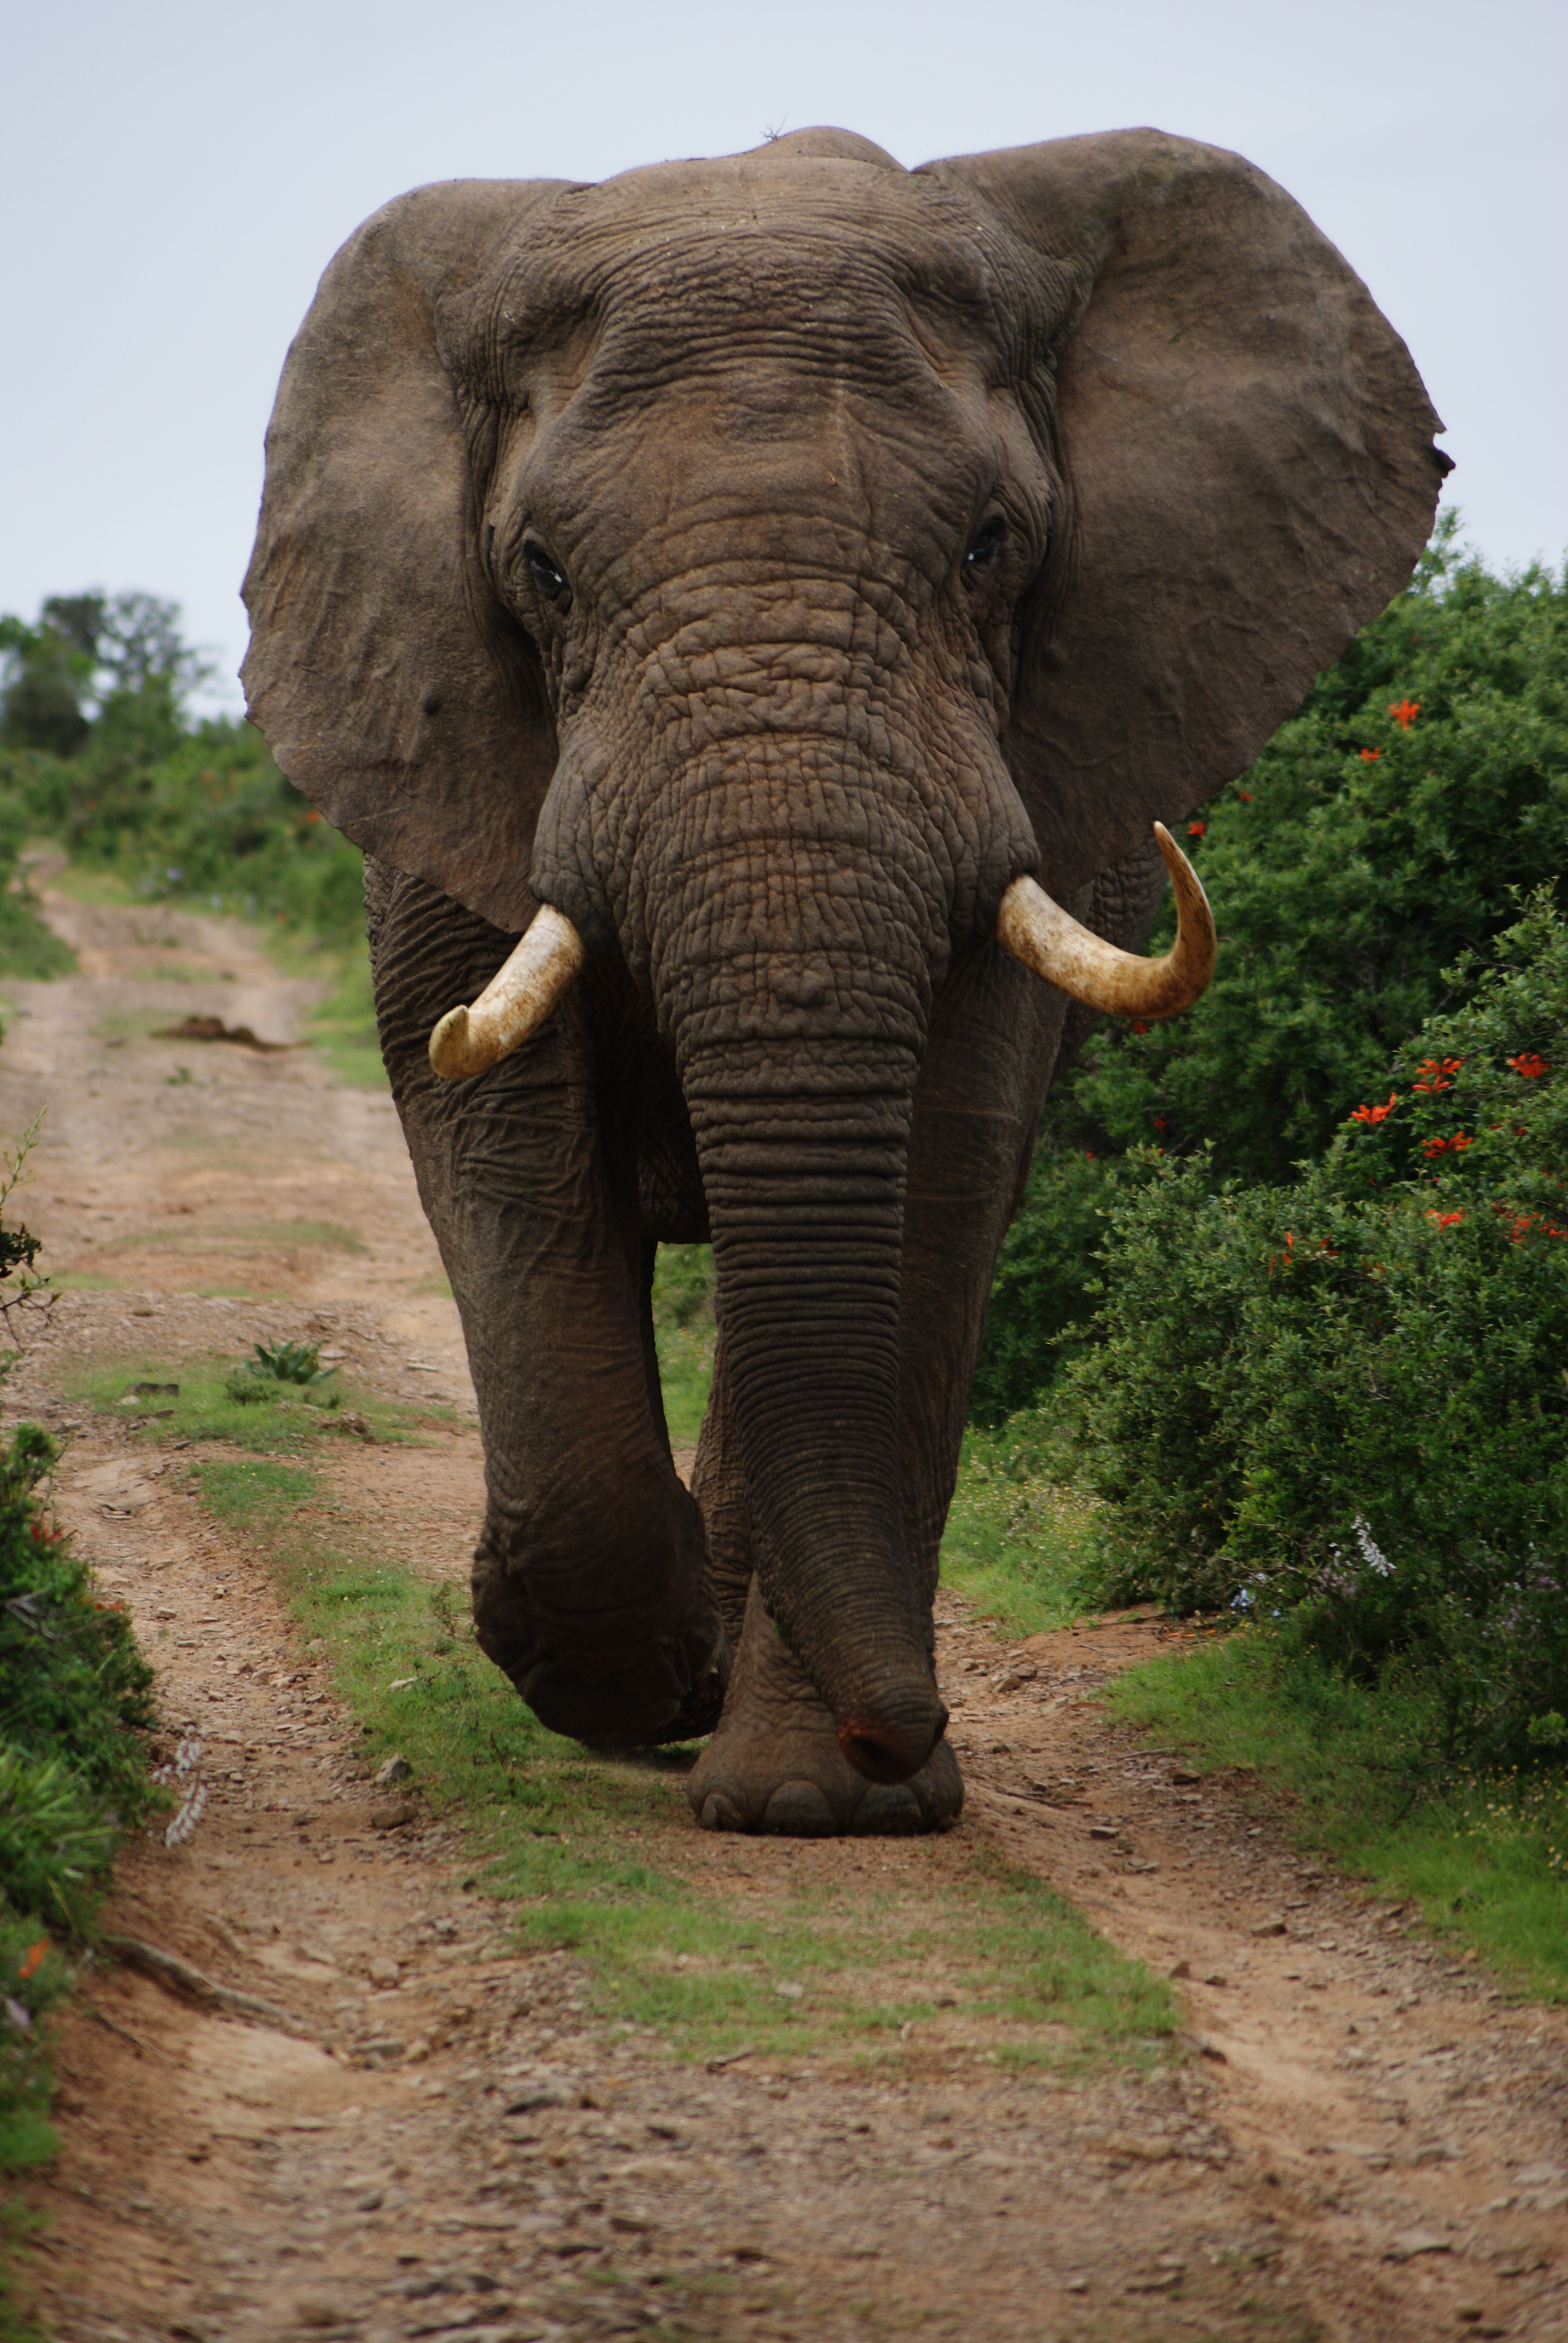 Elephant Pictures Hd Download Free Images Stock Photos On Unsplash Elephant png & psd images with full transparency. elephant pictures hd download free